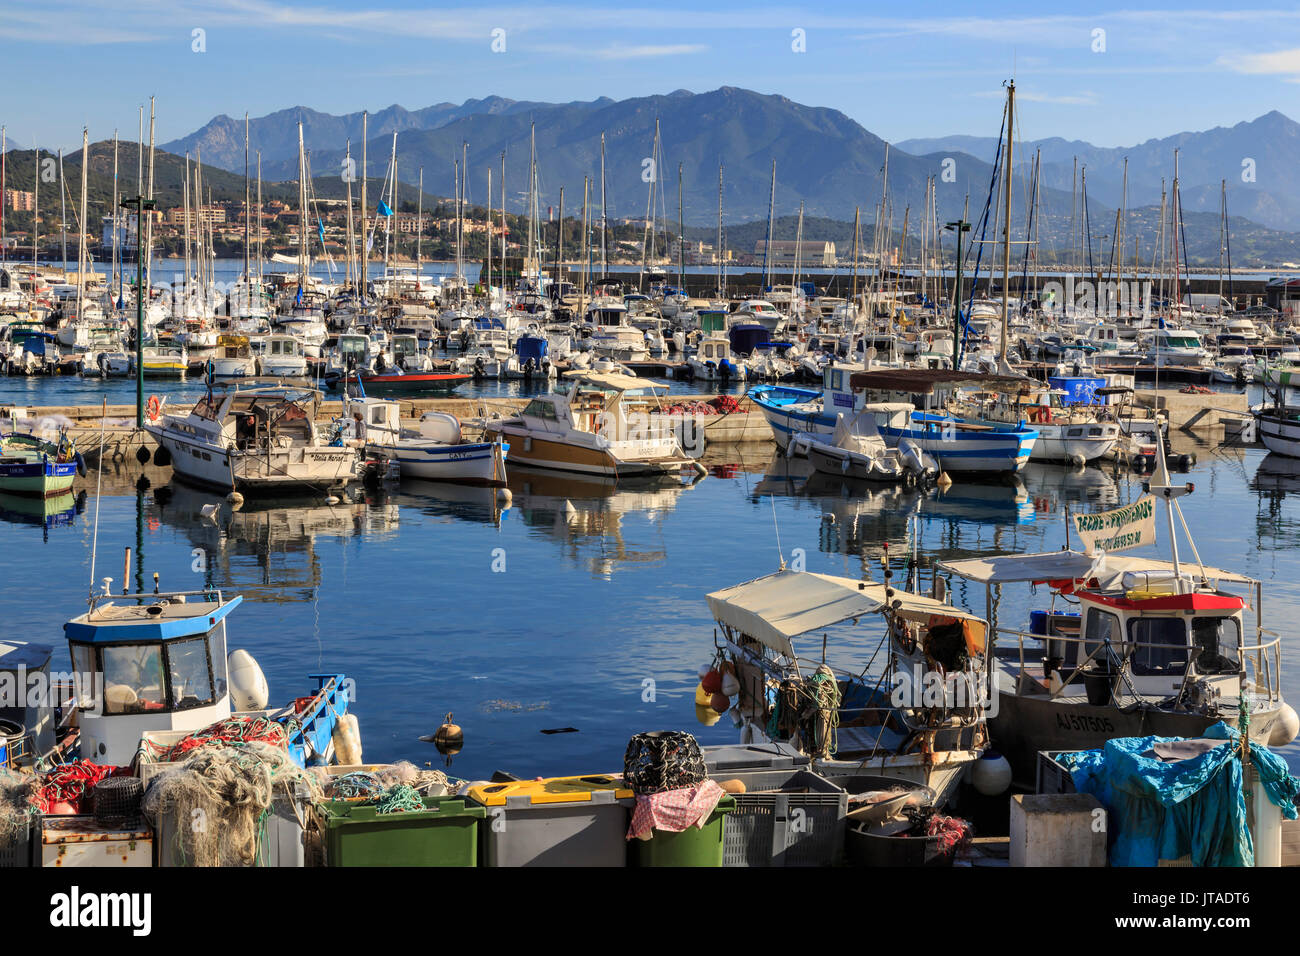 Old Port with fishing boats and yachts, view to distant mountains, Ajaccio, Island of Corsica, France, Mediterranean, - Stock Image